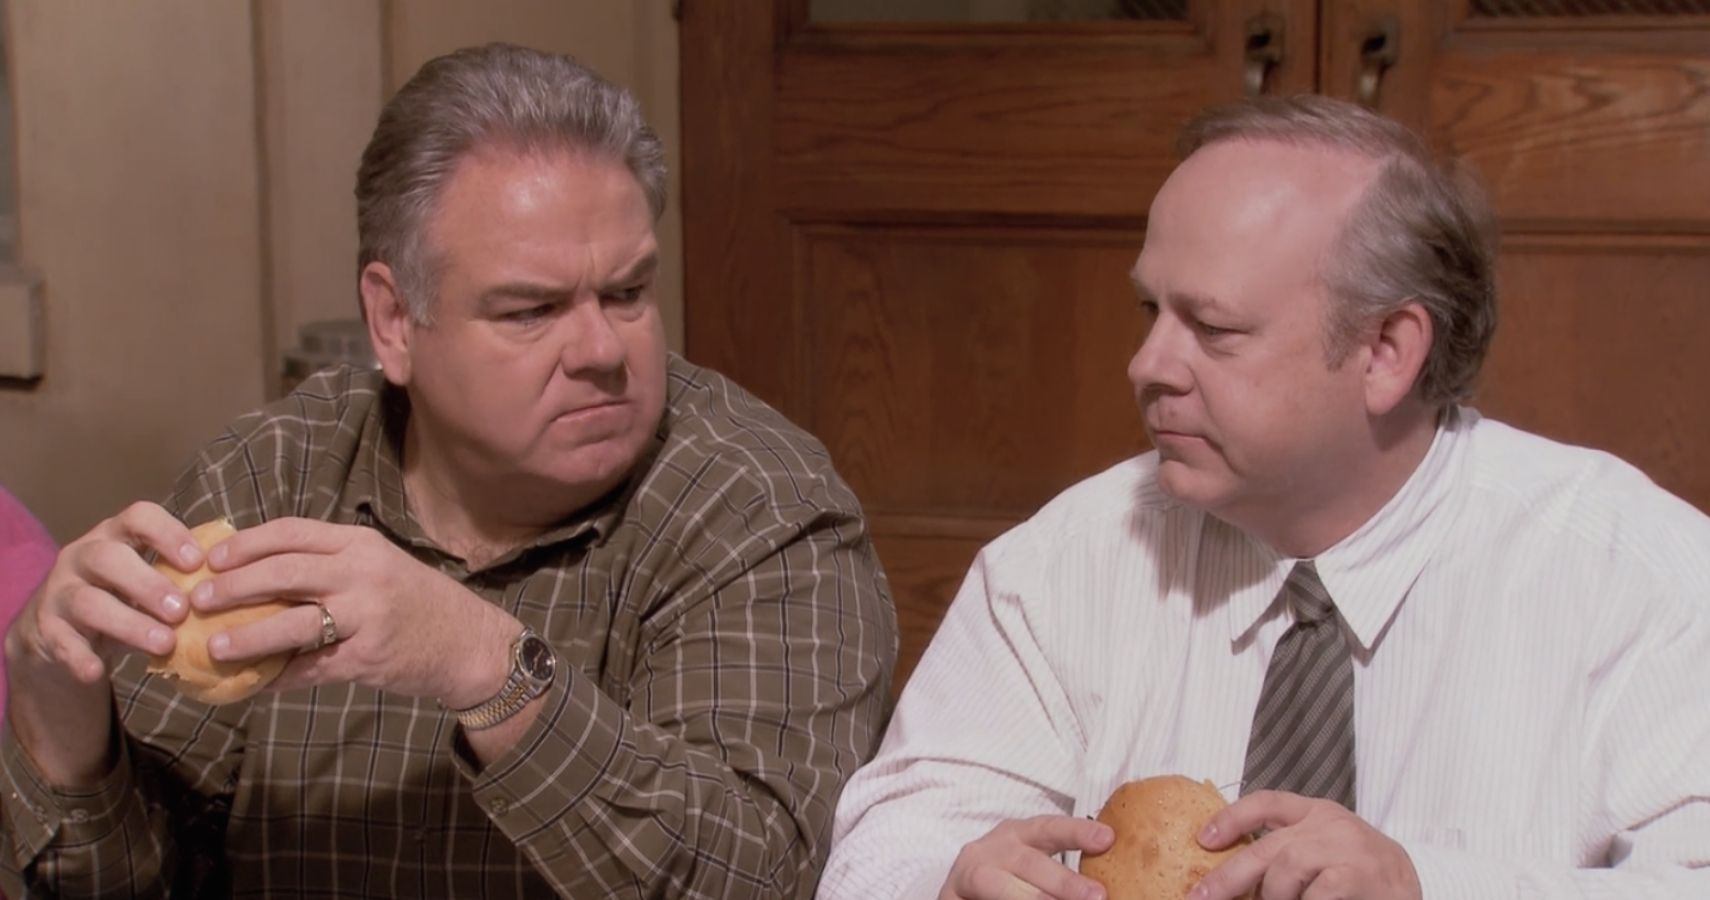 Parks and Recreation: Jerry Vs. Kyle: Who Had It Worse?